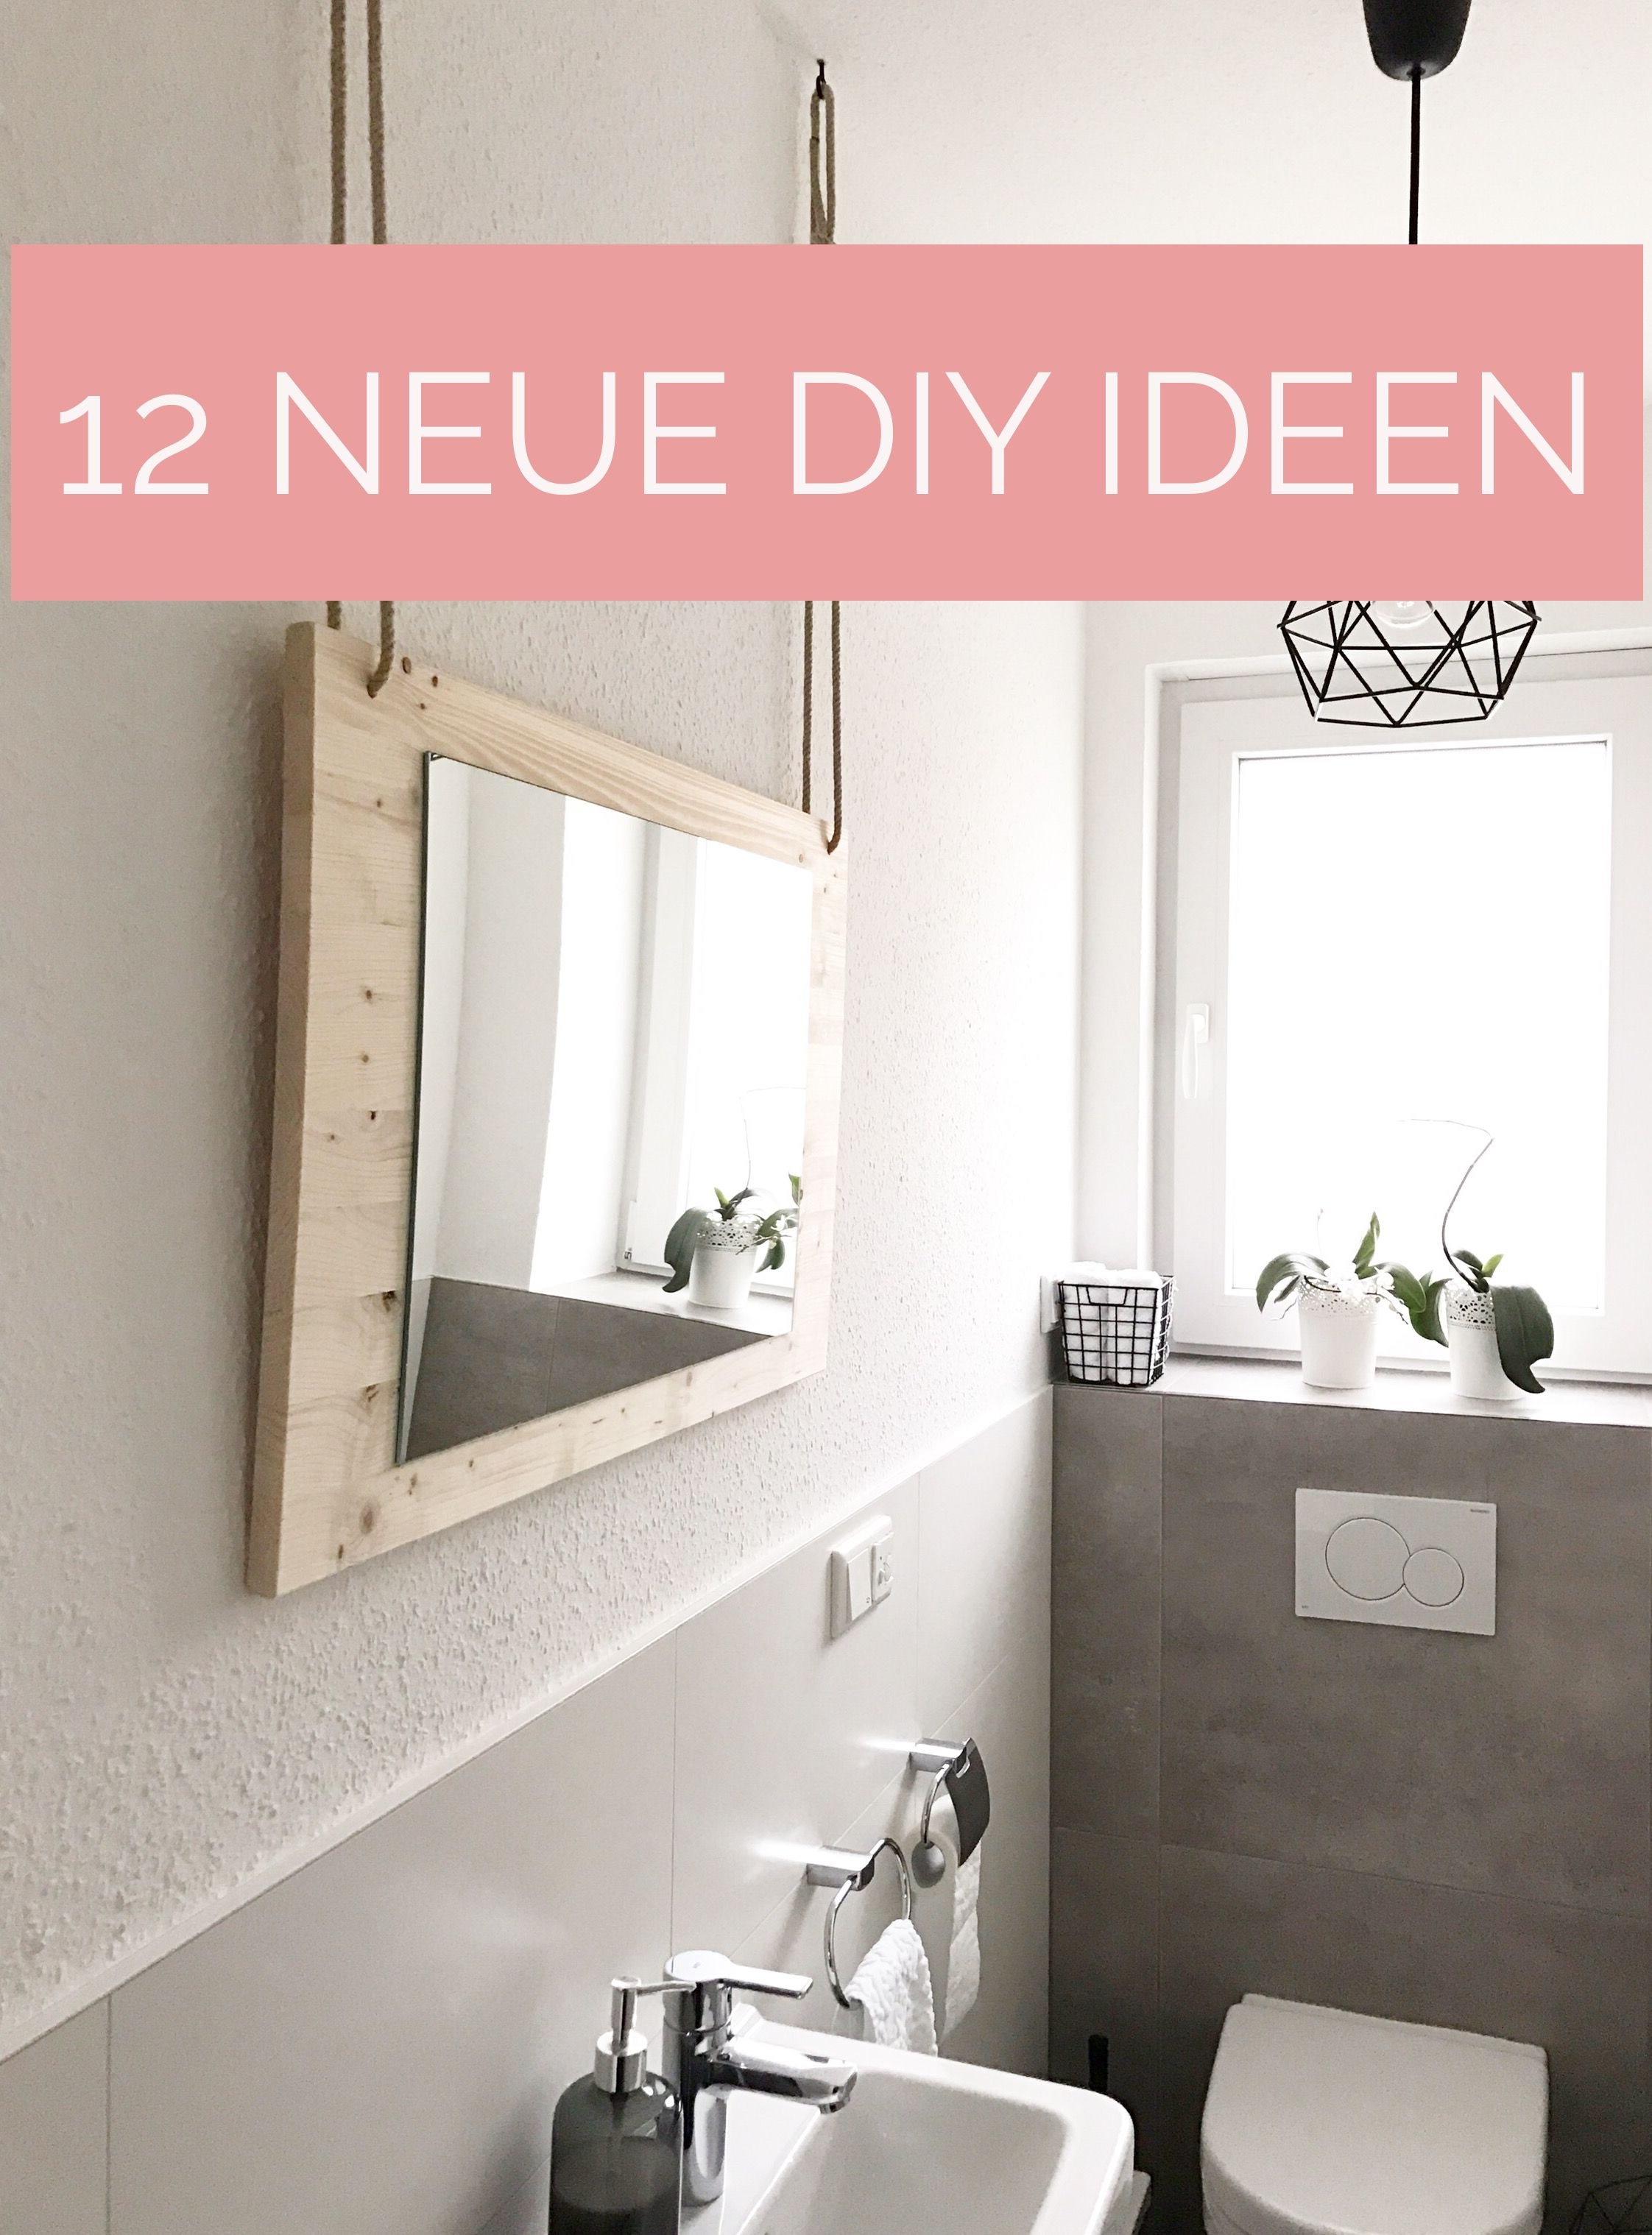 Badezimmer Renovieren Do It Yourself Diynstag 13 Neue Diy Ideen Diy Diy Bathroom Decor